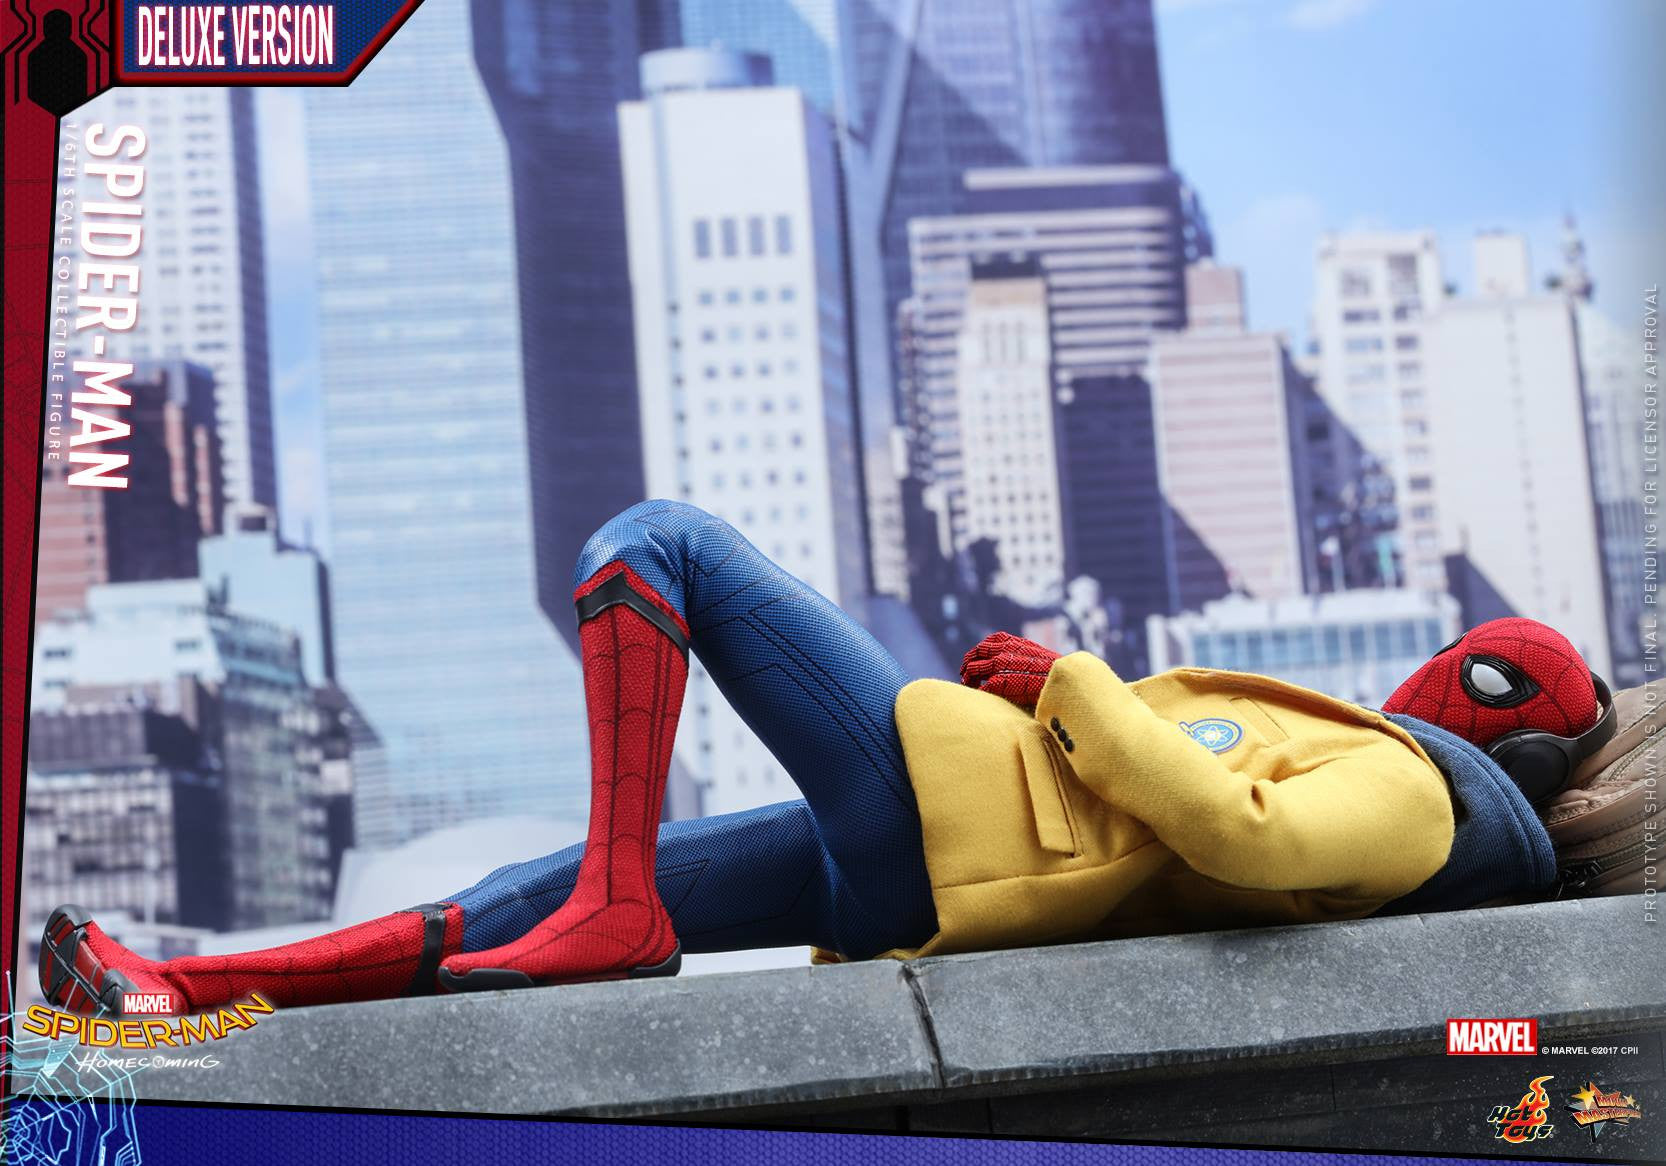 Hot Toys Spider-man: Homecoming (Deluxe Version)